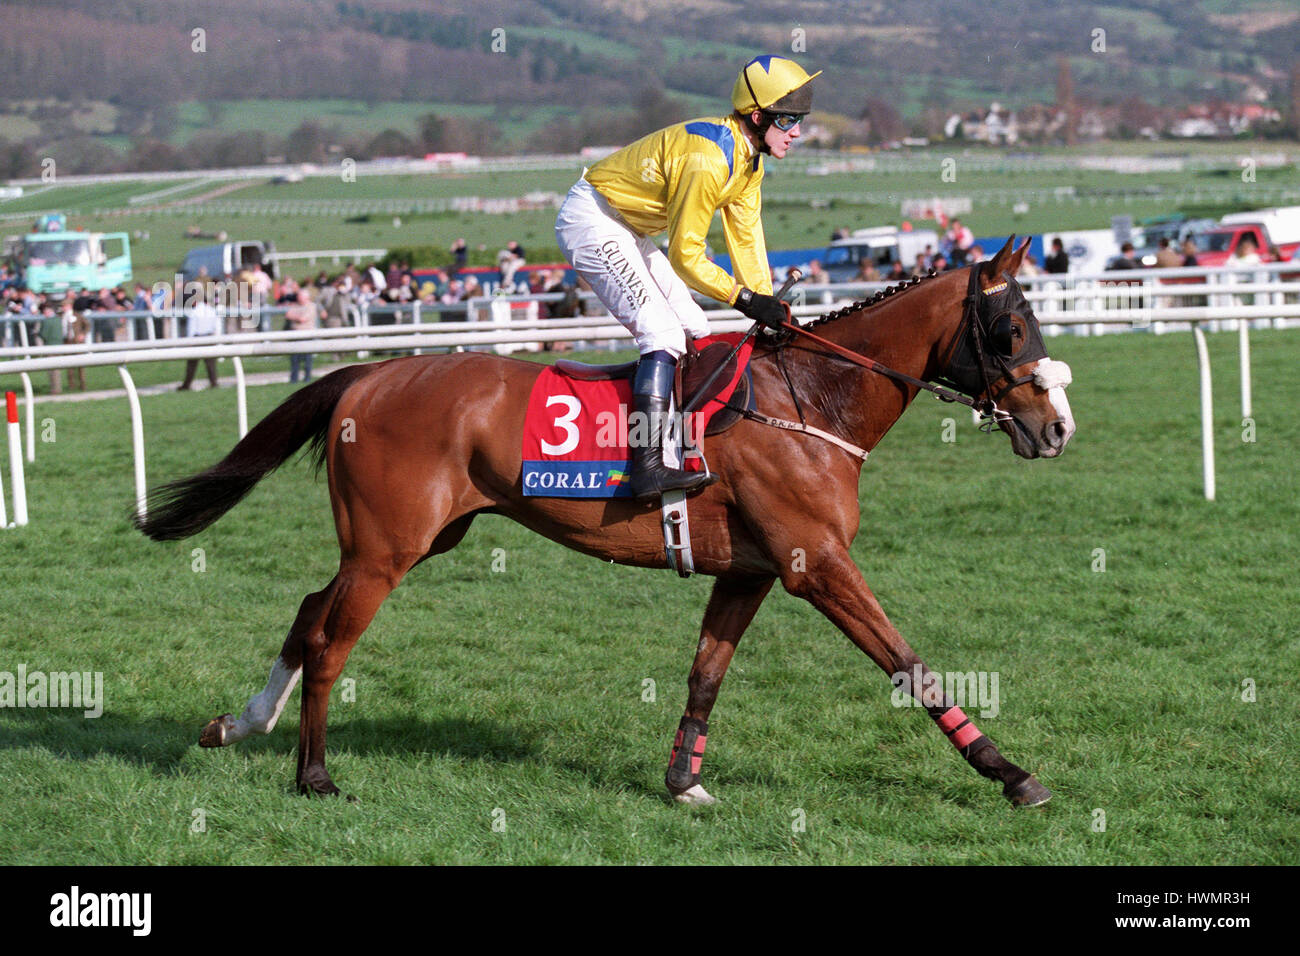 ARCHIVE FOOTAGE RIDDEN BY A.P.MCCOY 23 March 1999 - Stock Image